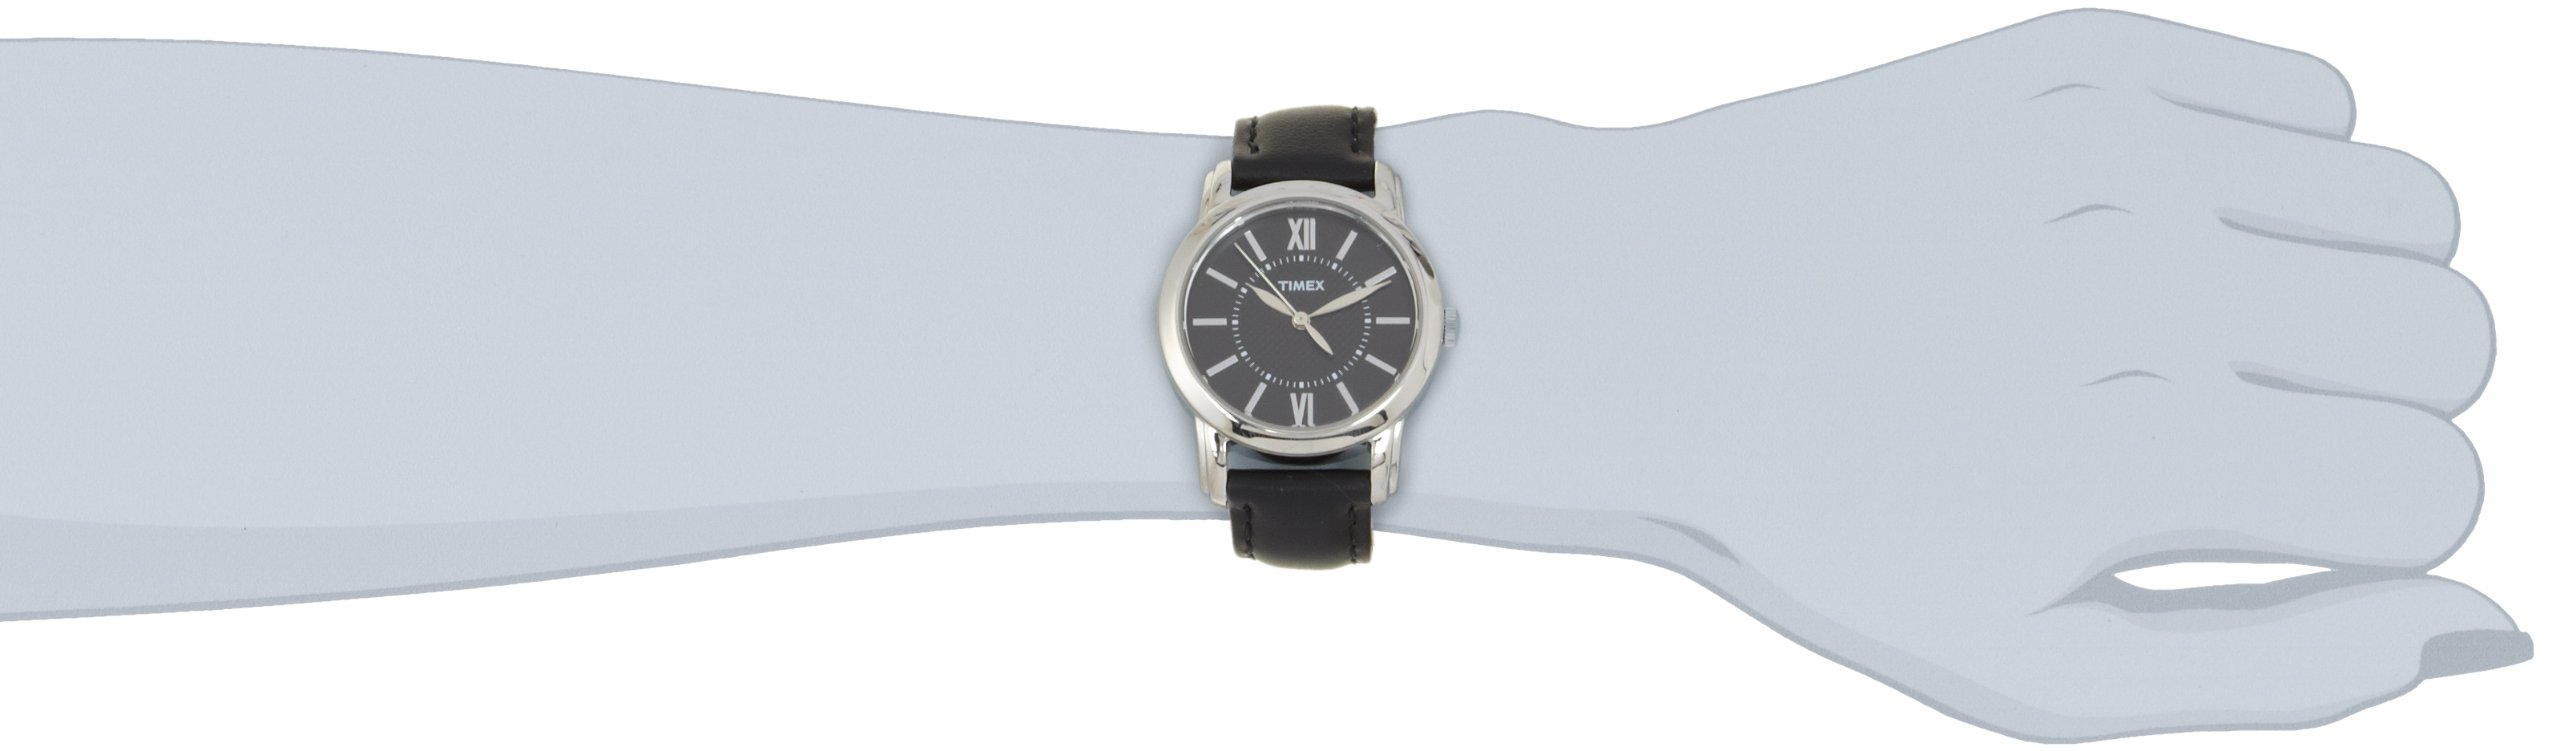 Timex Women's T2N6819J Style Classic Black Leather Strap Watch by Timex (Image #3)